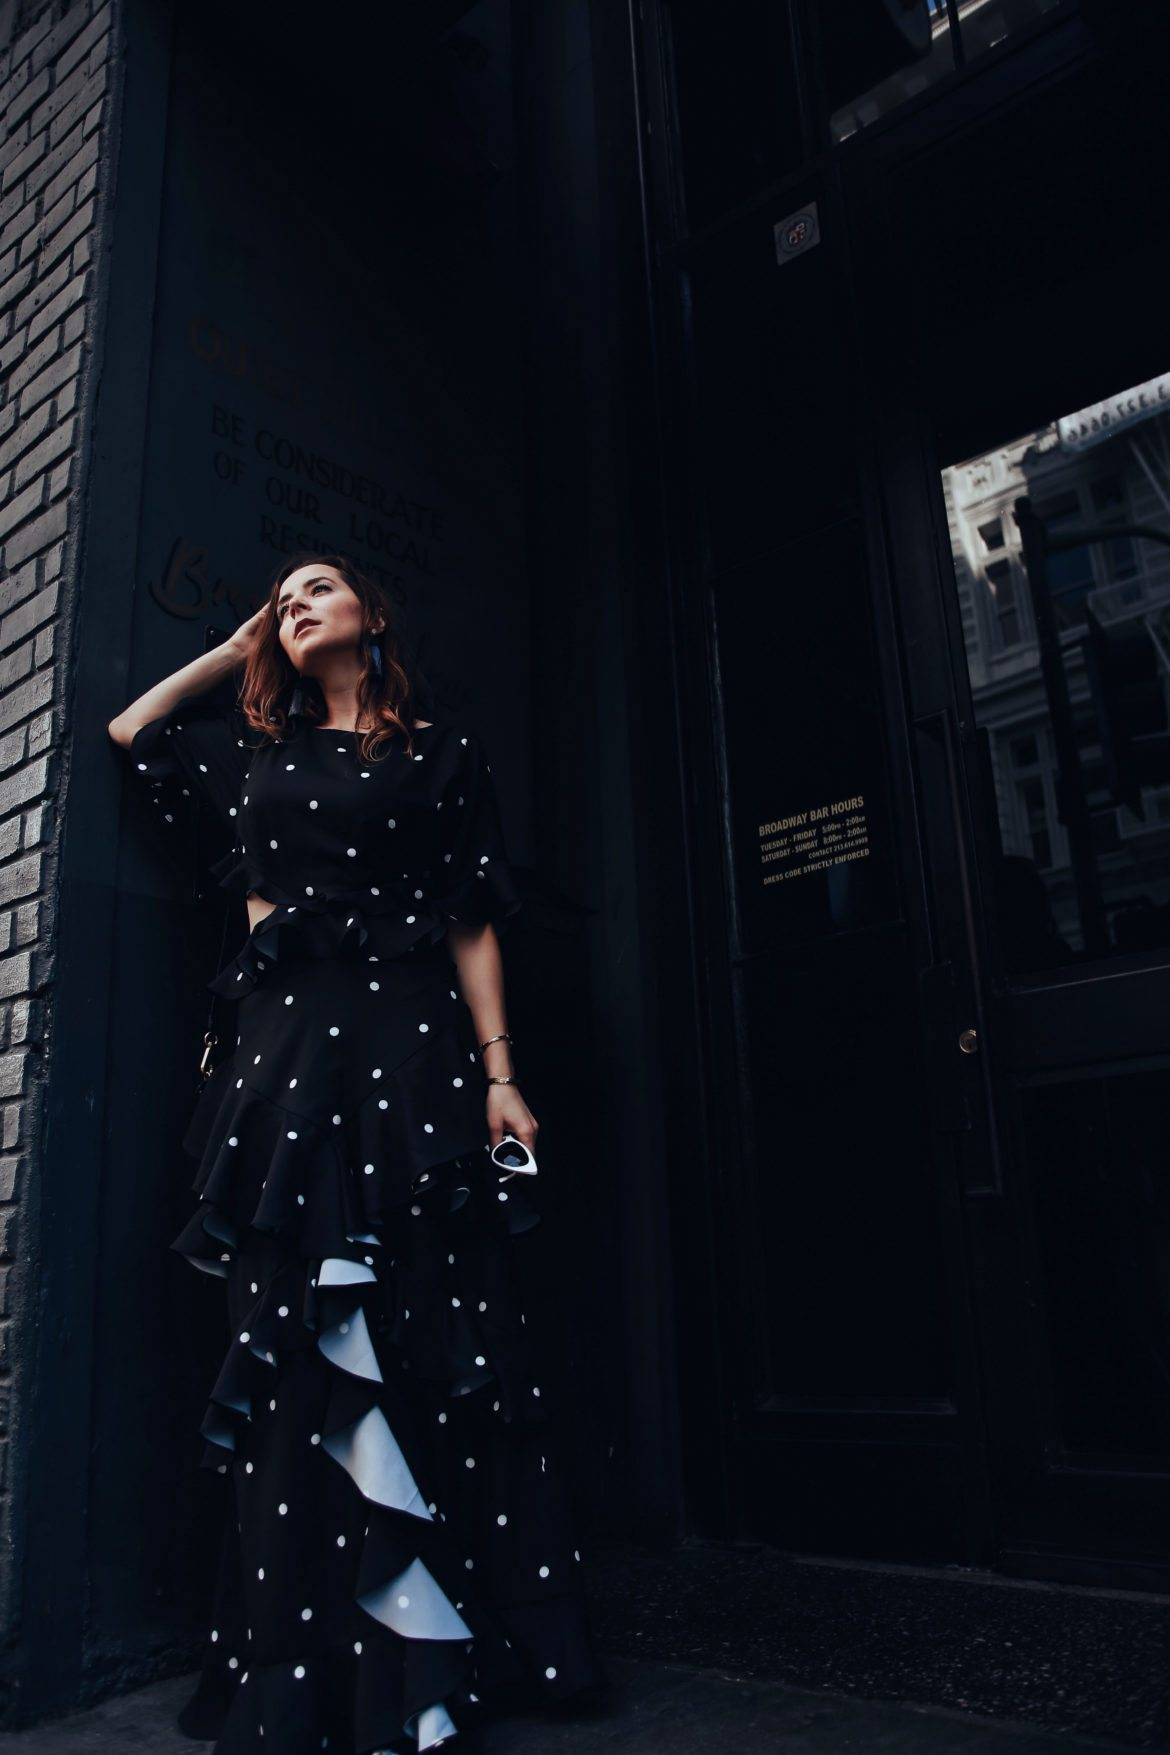 Evening dresses with Fame and Partners, A LA brand specialized in wedding party dresses. Julia Comil, French Fashion blogger in Los Angeles features the black and white polka dots Maritza dress from Fame and Partners - shot in Downtown Los Angeles